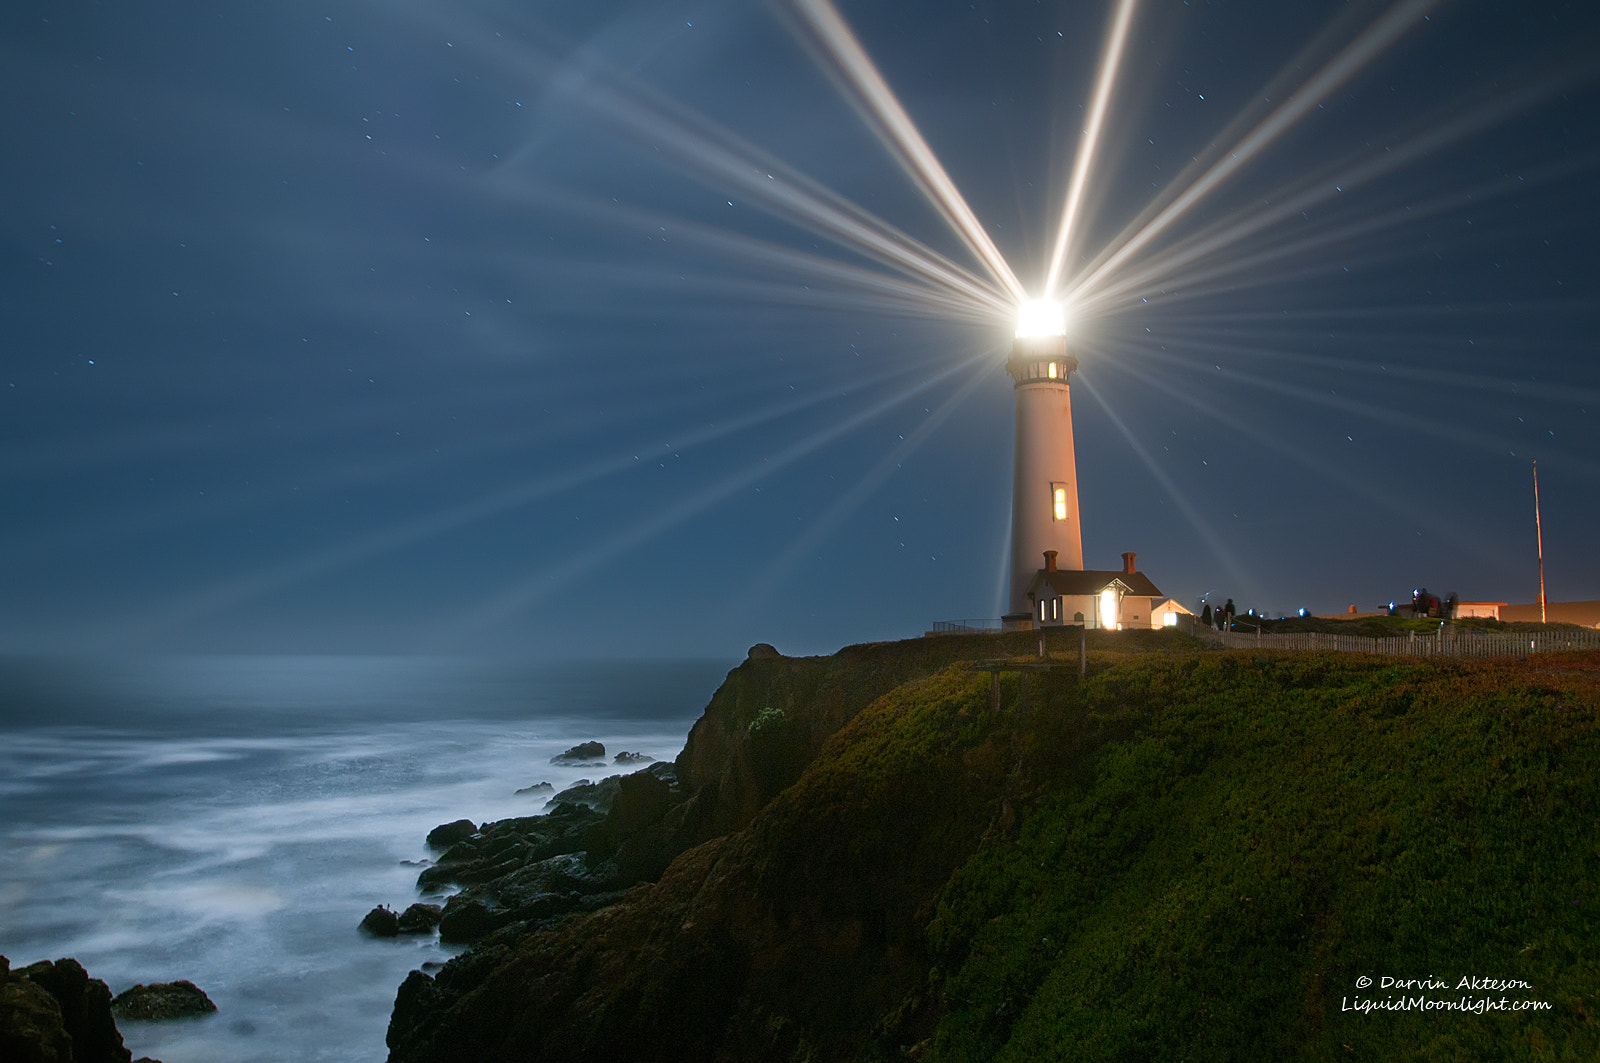 Photograph Return to Pigeon Point Lighthouse - 138th Anniversary by Darvin Atkeson on 500px